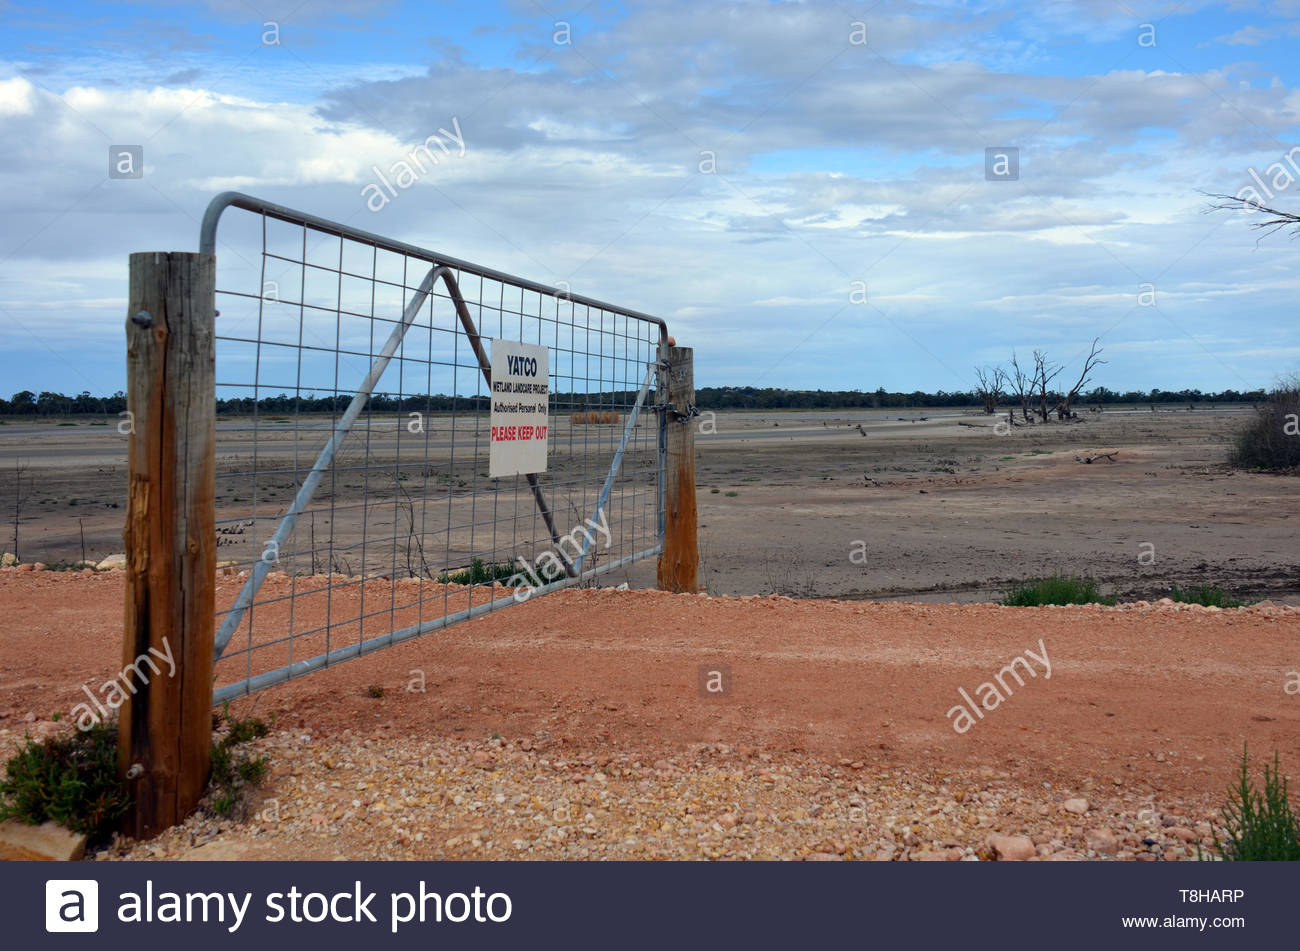 Yatco Wetlands 'keep out' gate on an angle with no fence. Moorook, South Australia. Dry wetlands. Colour photo. - Stock Image